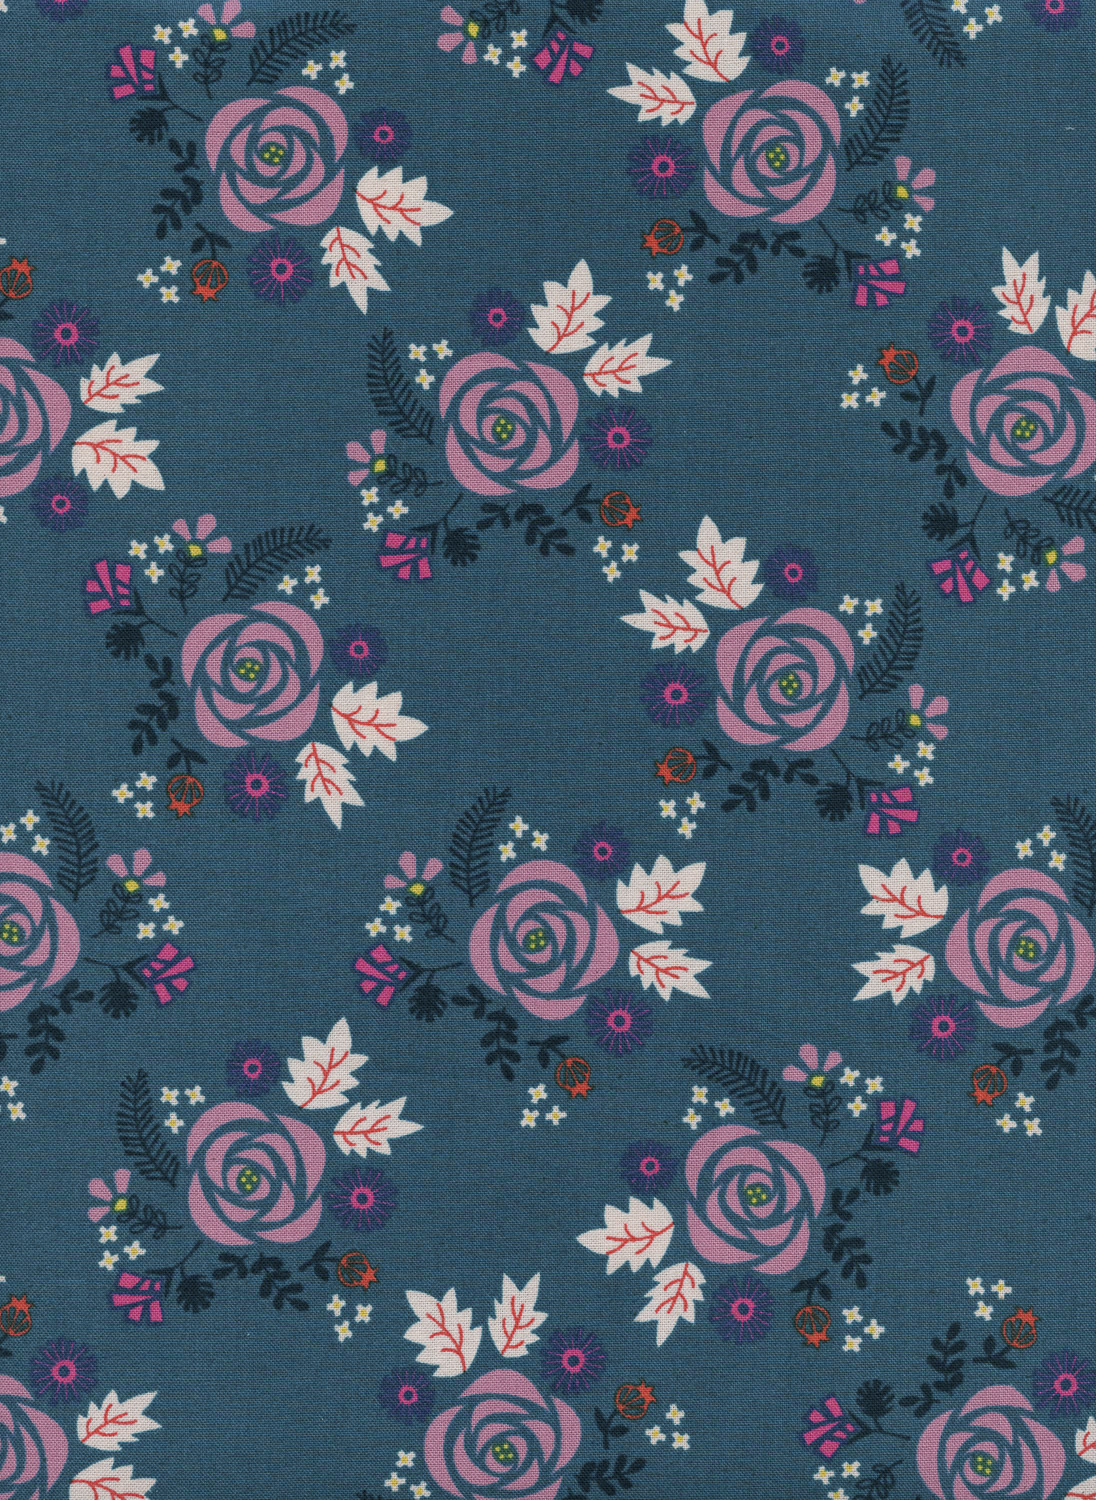 Wildflower in Teal by Rashida Coleman Hale from the Akoma collection for Cotton and Steel #R1972002